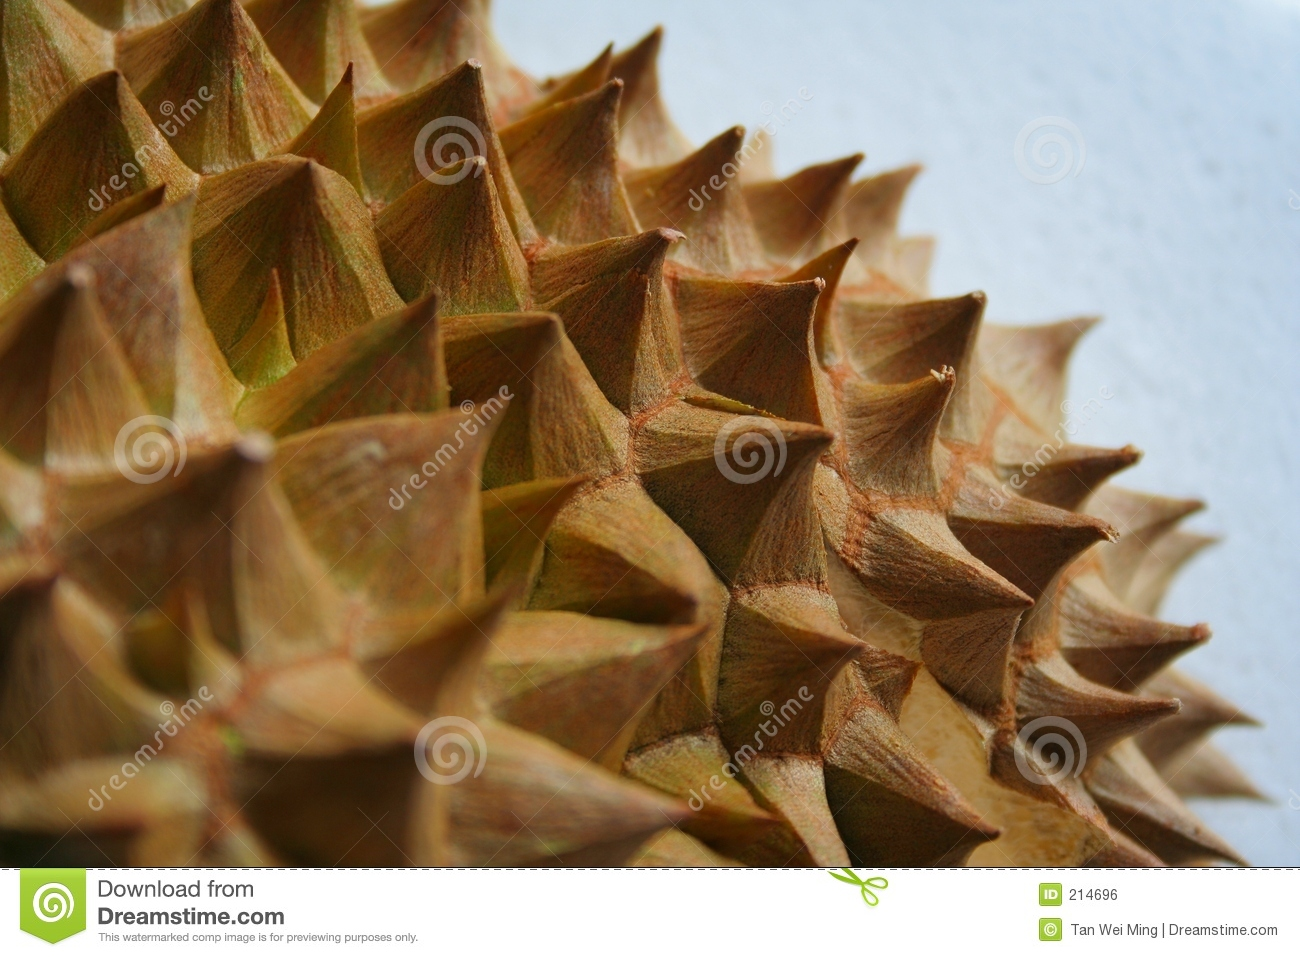 Spine del Durian